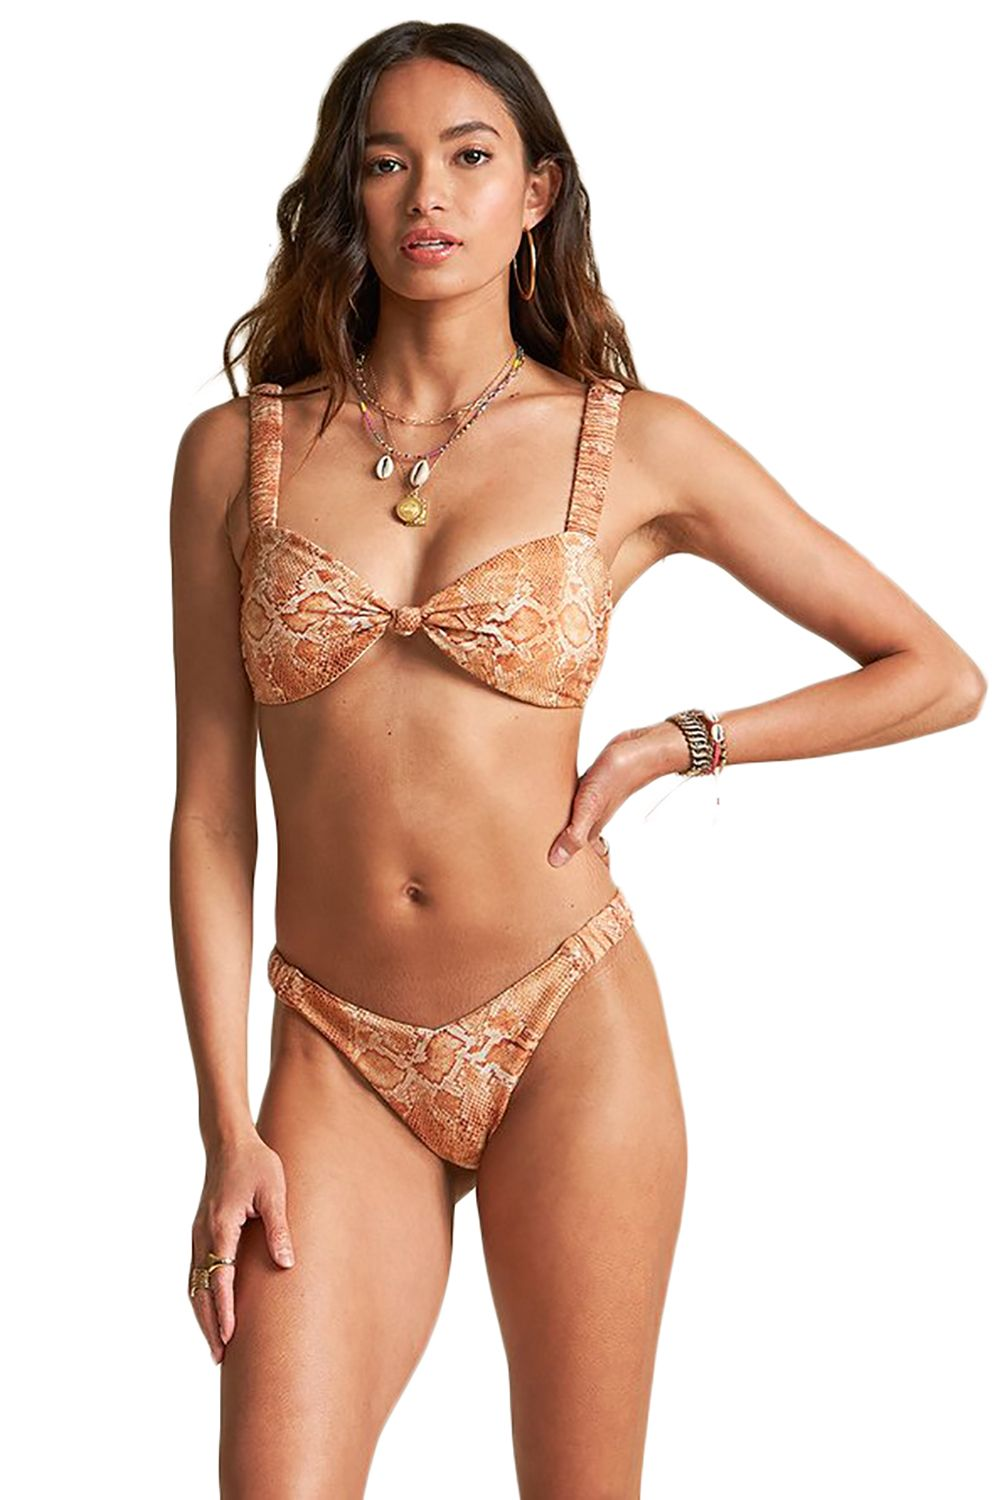 Billabong Bikini Top OVER THE SUN BANDEAU SINCERELY JULES Multi